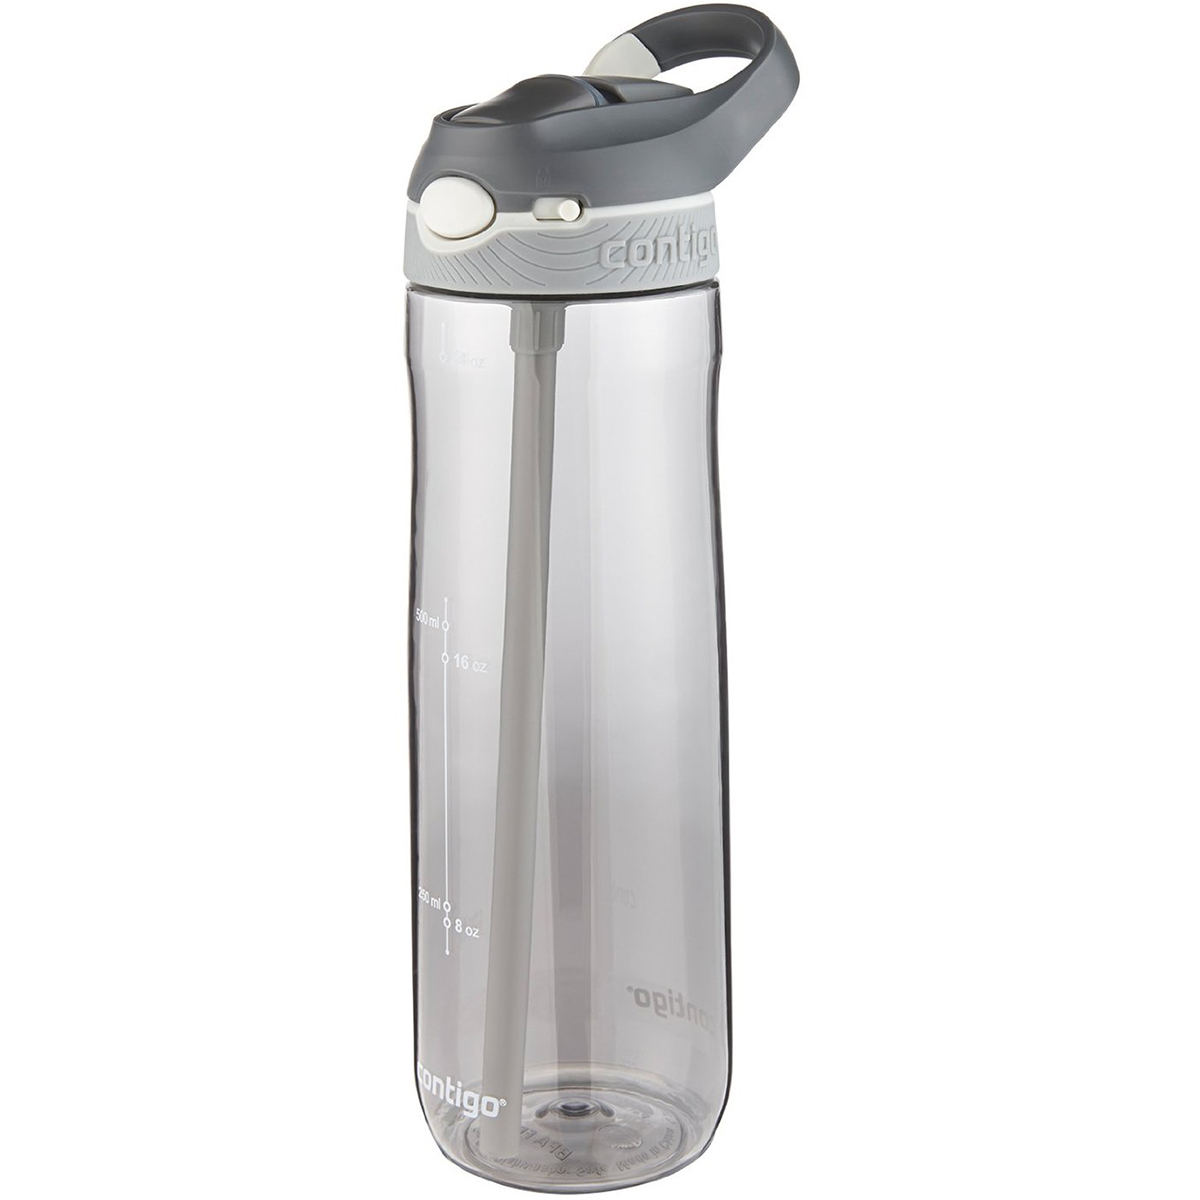 Contigo-24-oz-Ashland-Autospout-Water-Bottle Indexbild 16